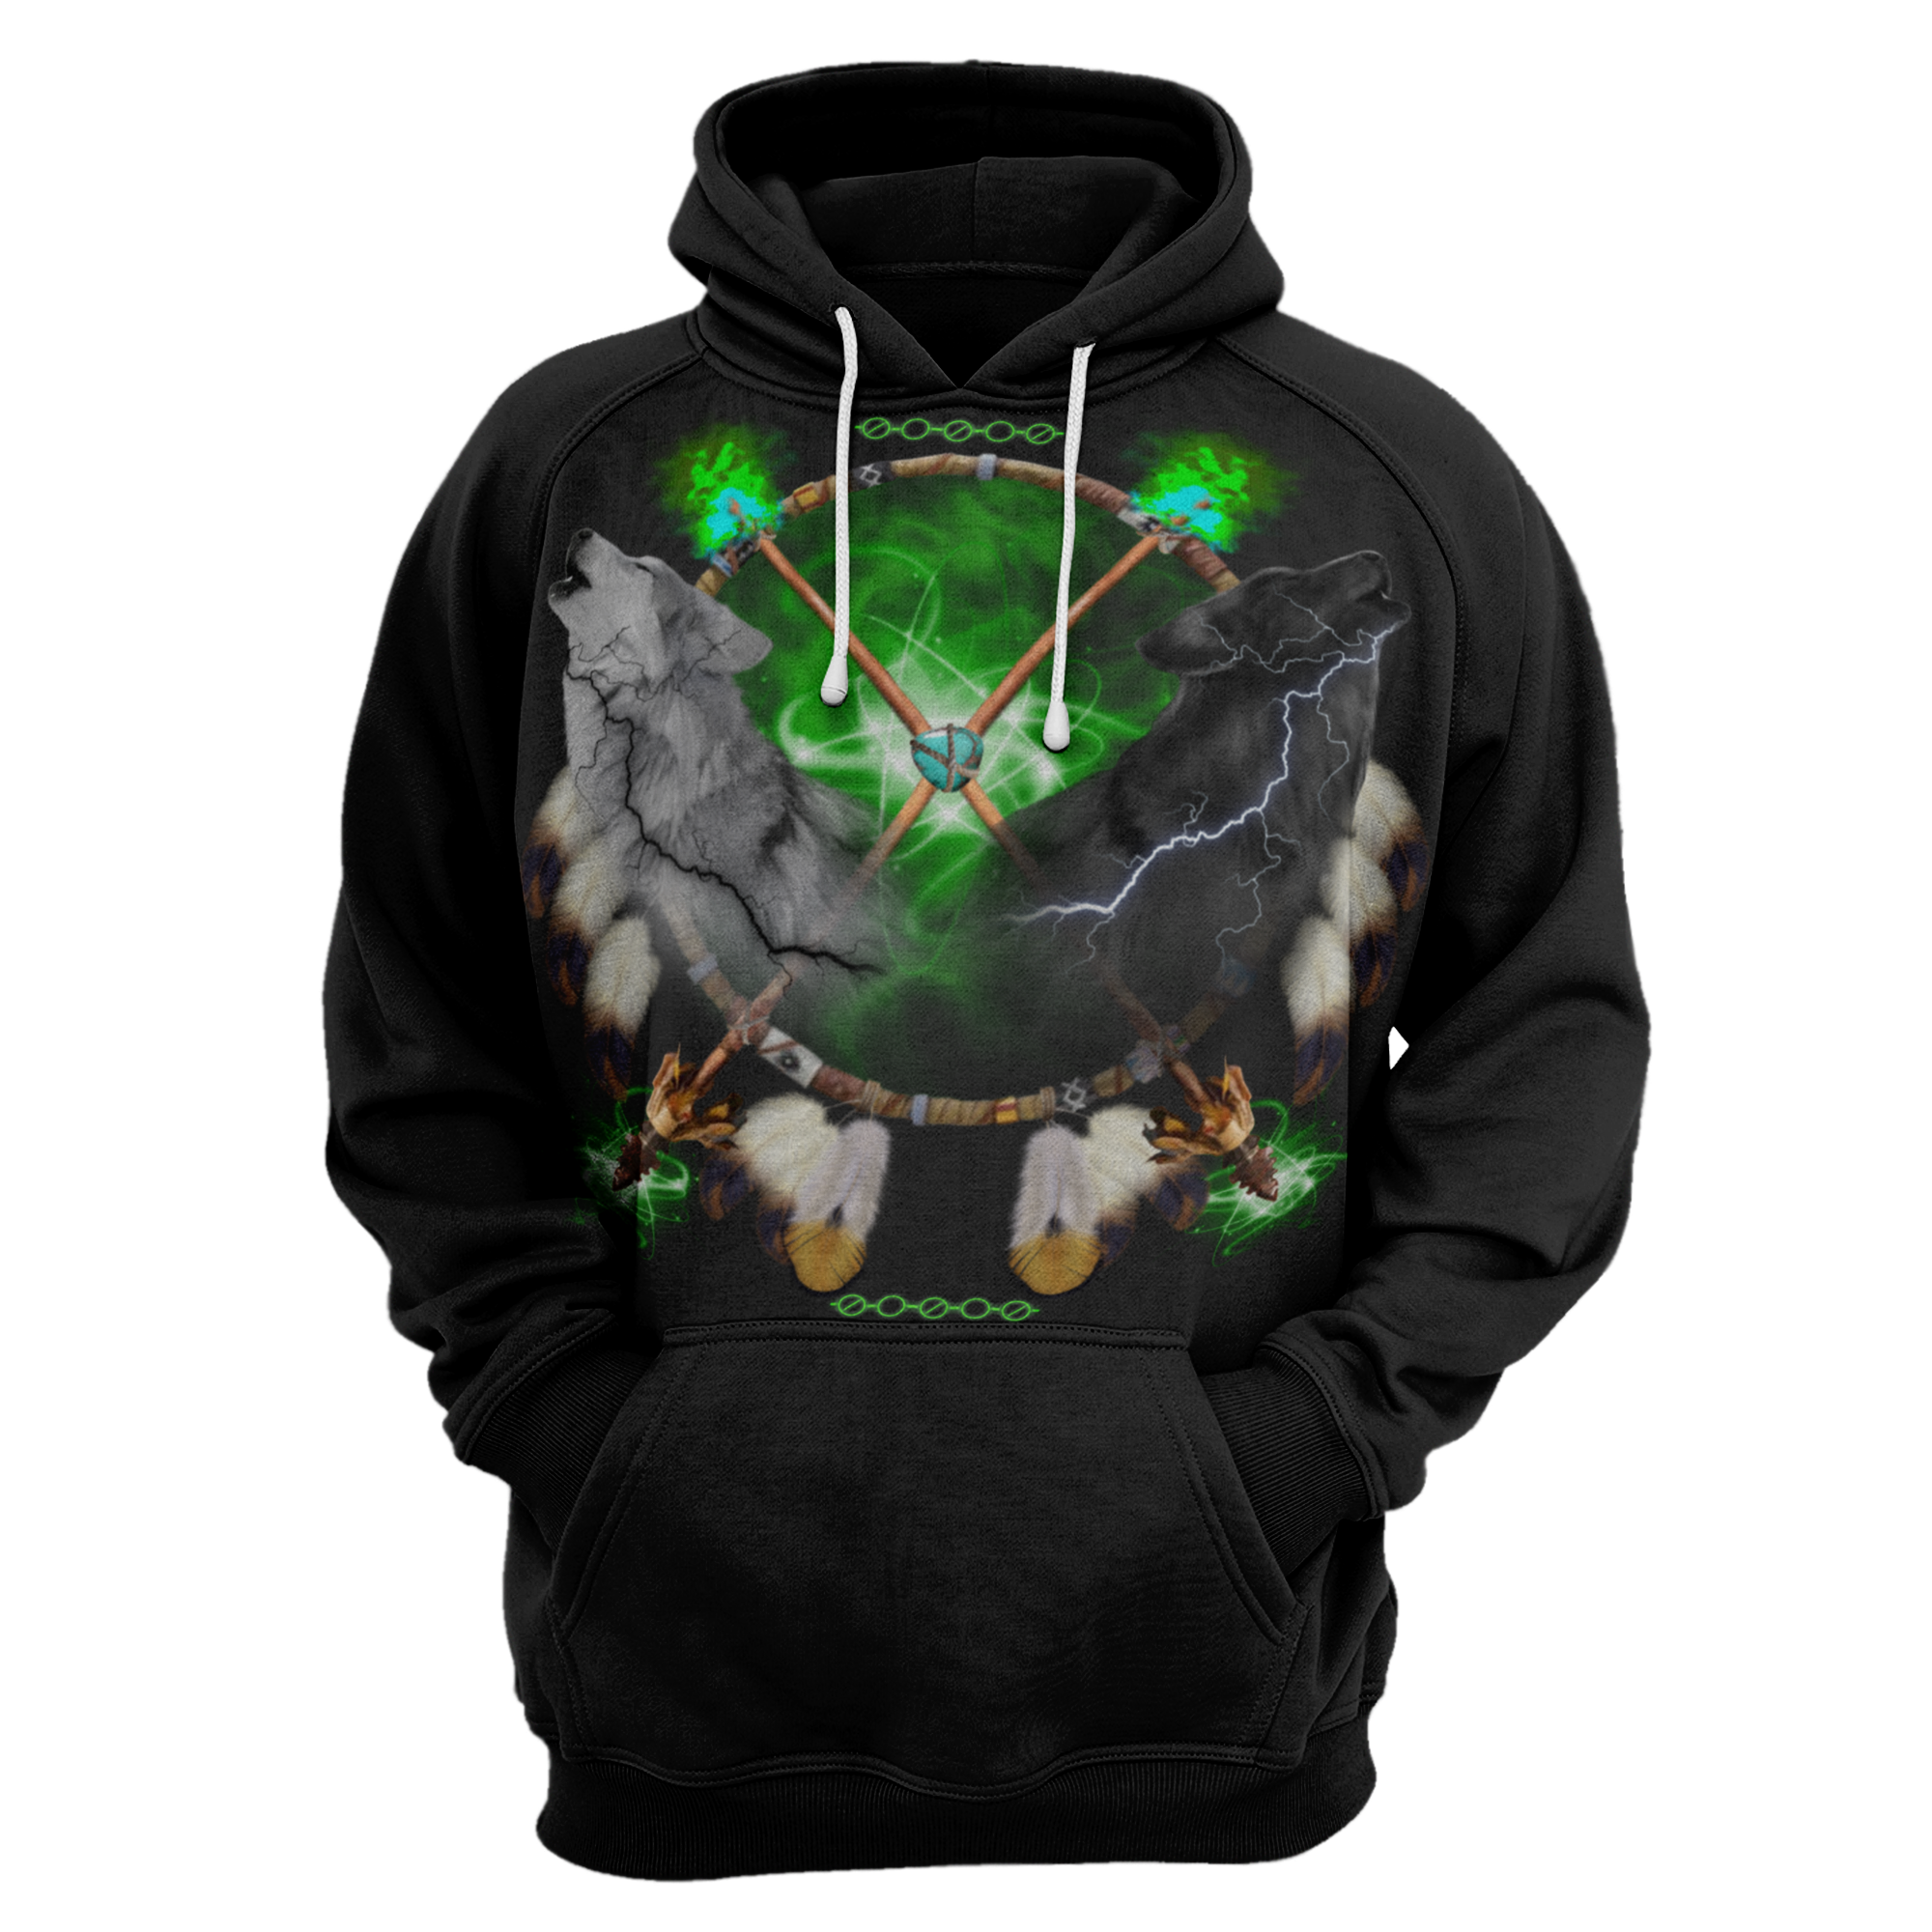 Day and Night Lightning Hoodie